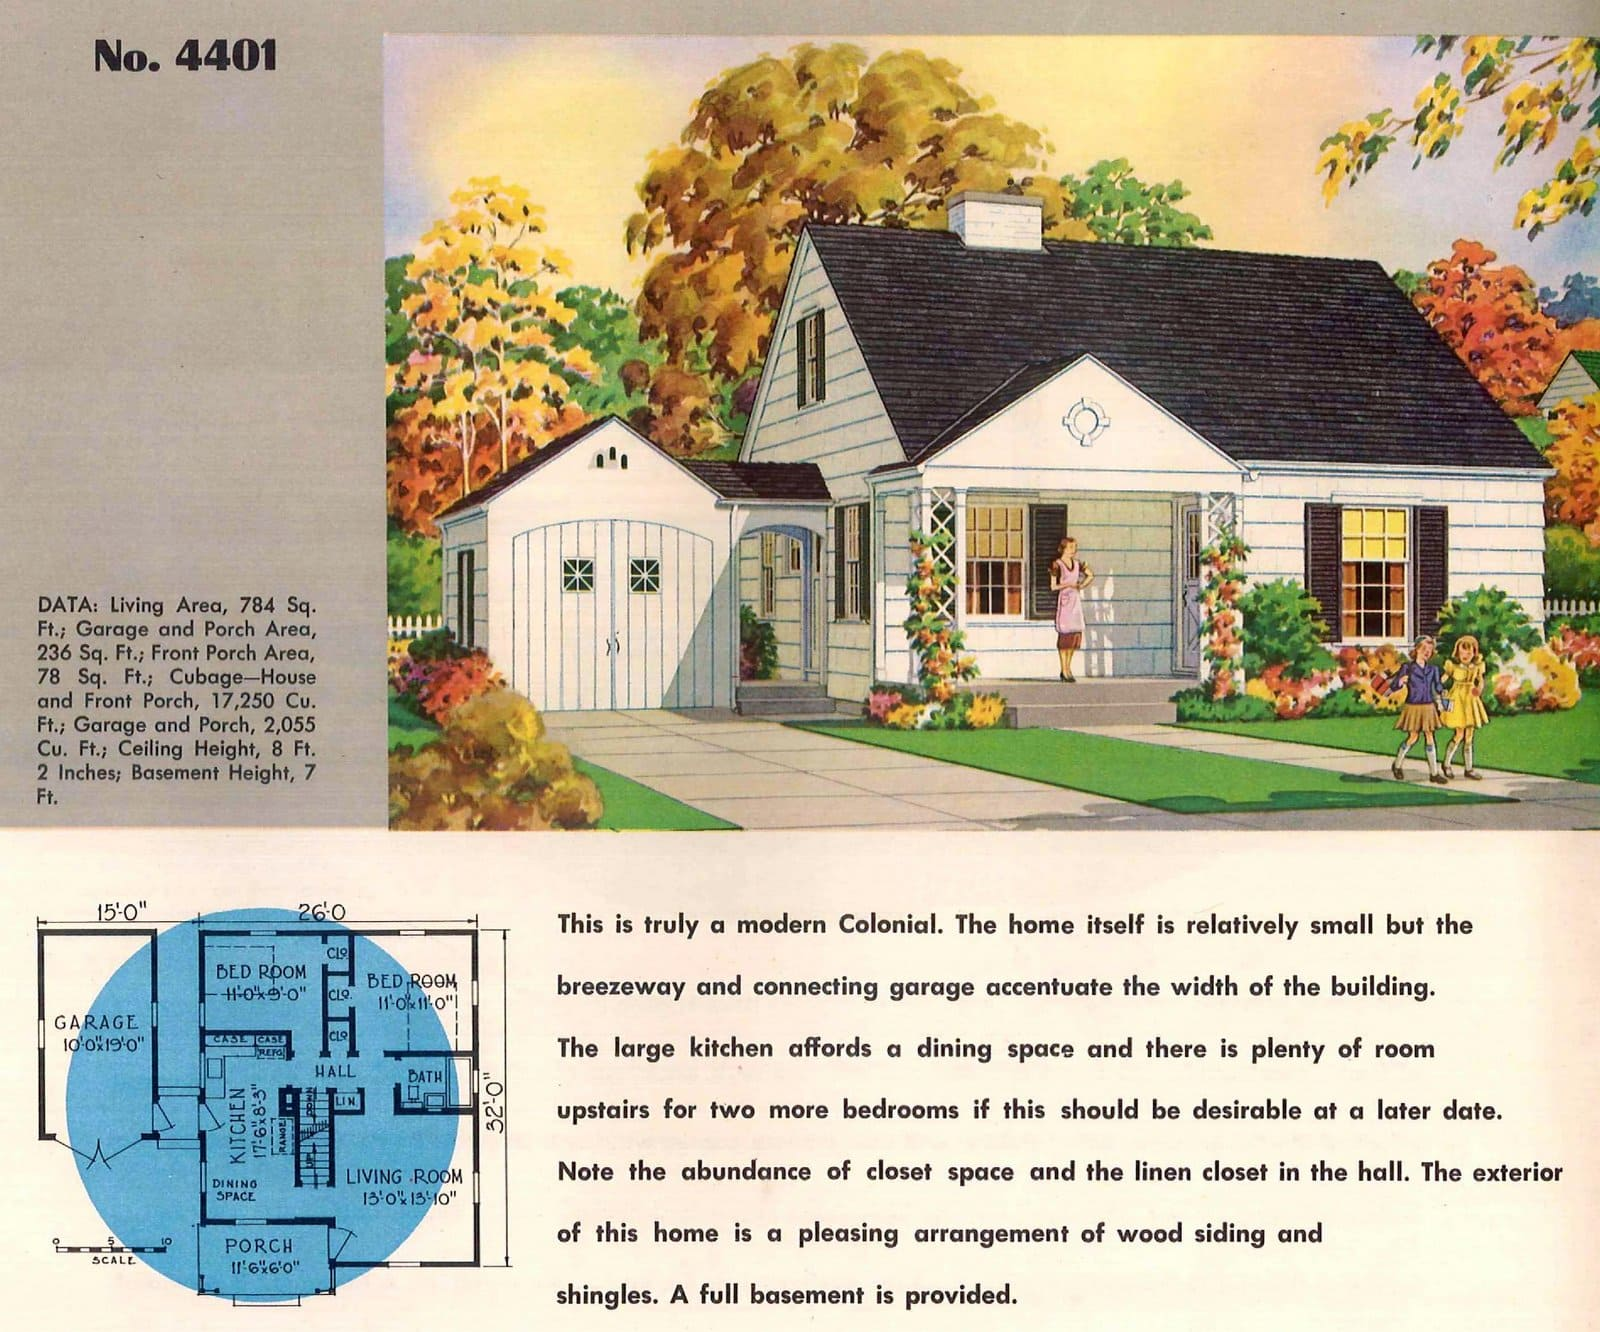 Vintage 50s small starter home designs from 1950 (11)